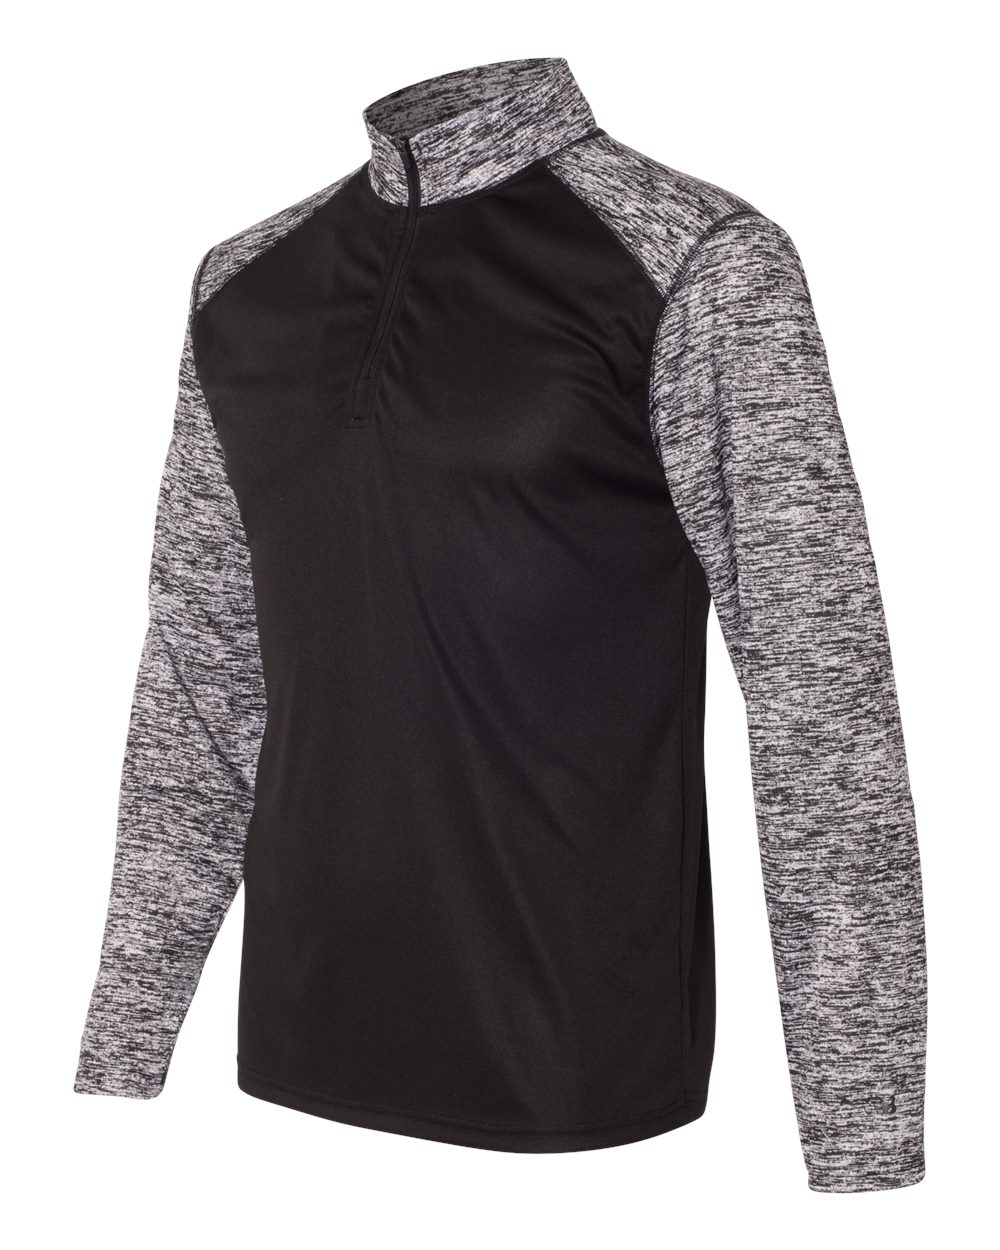 Badger 4197 - Blend Sport Quarter-Zip